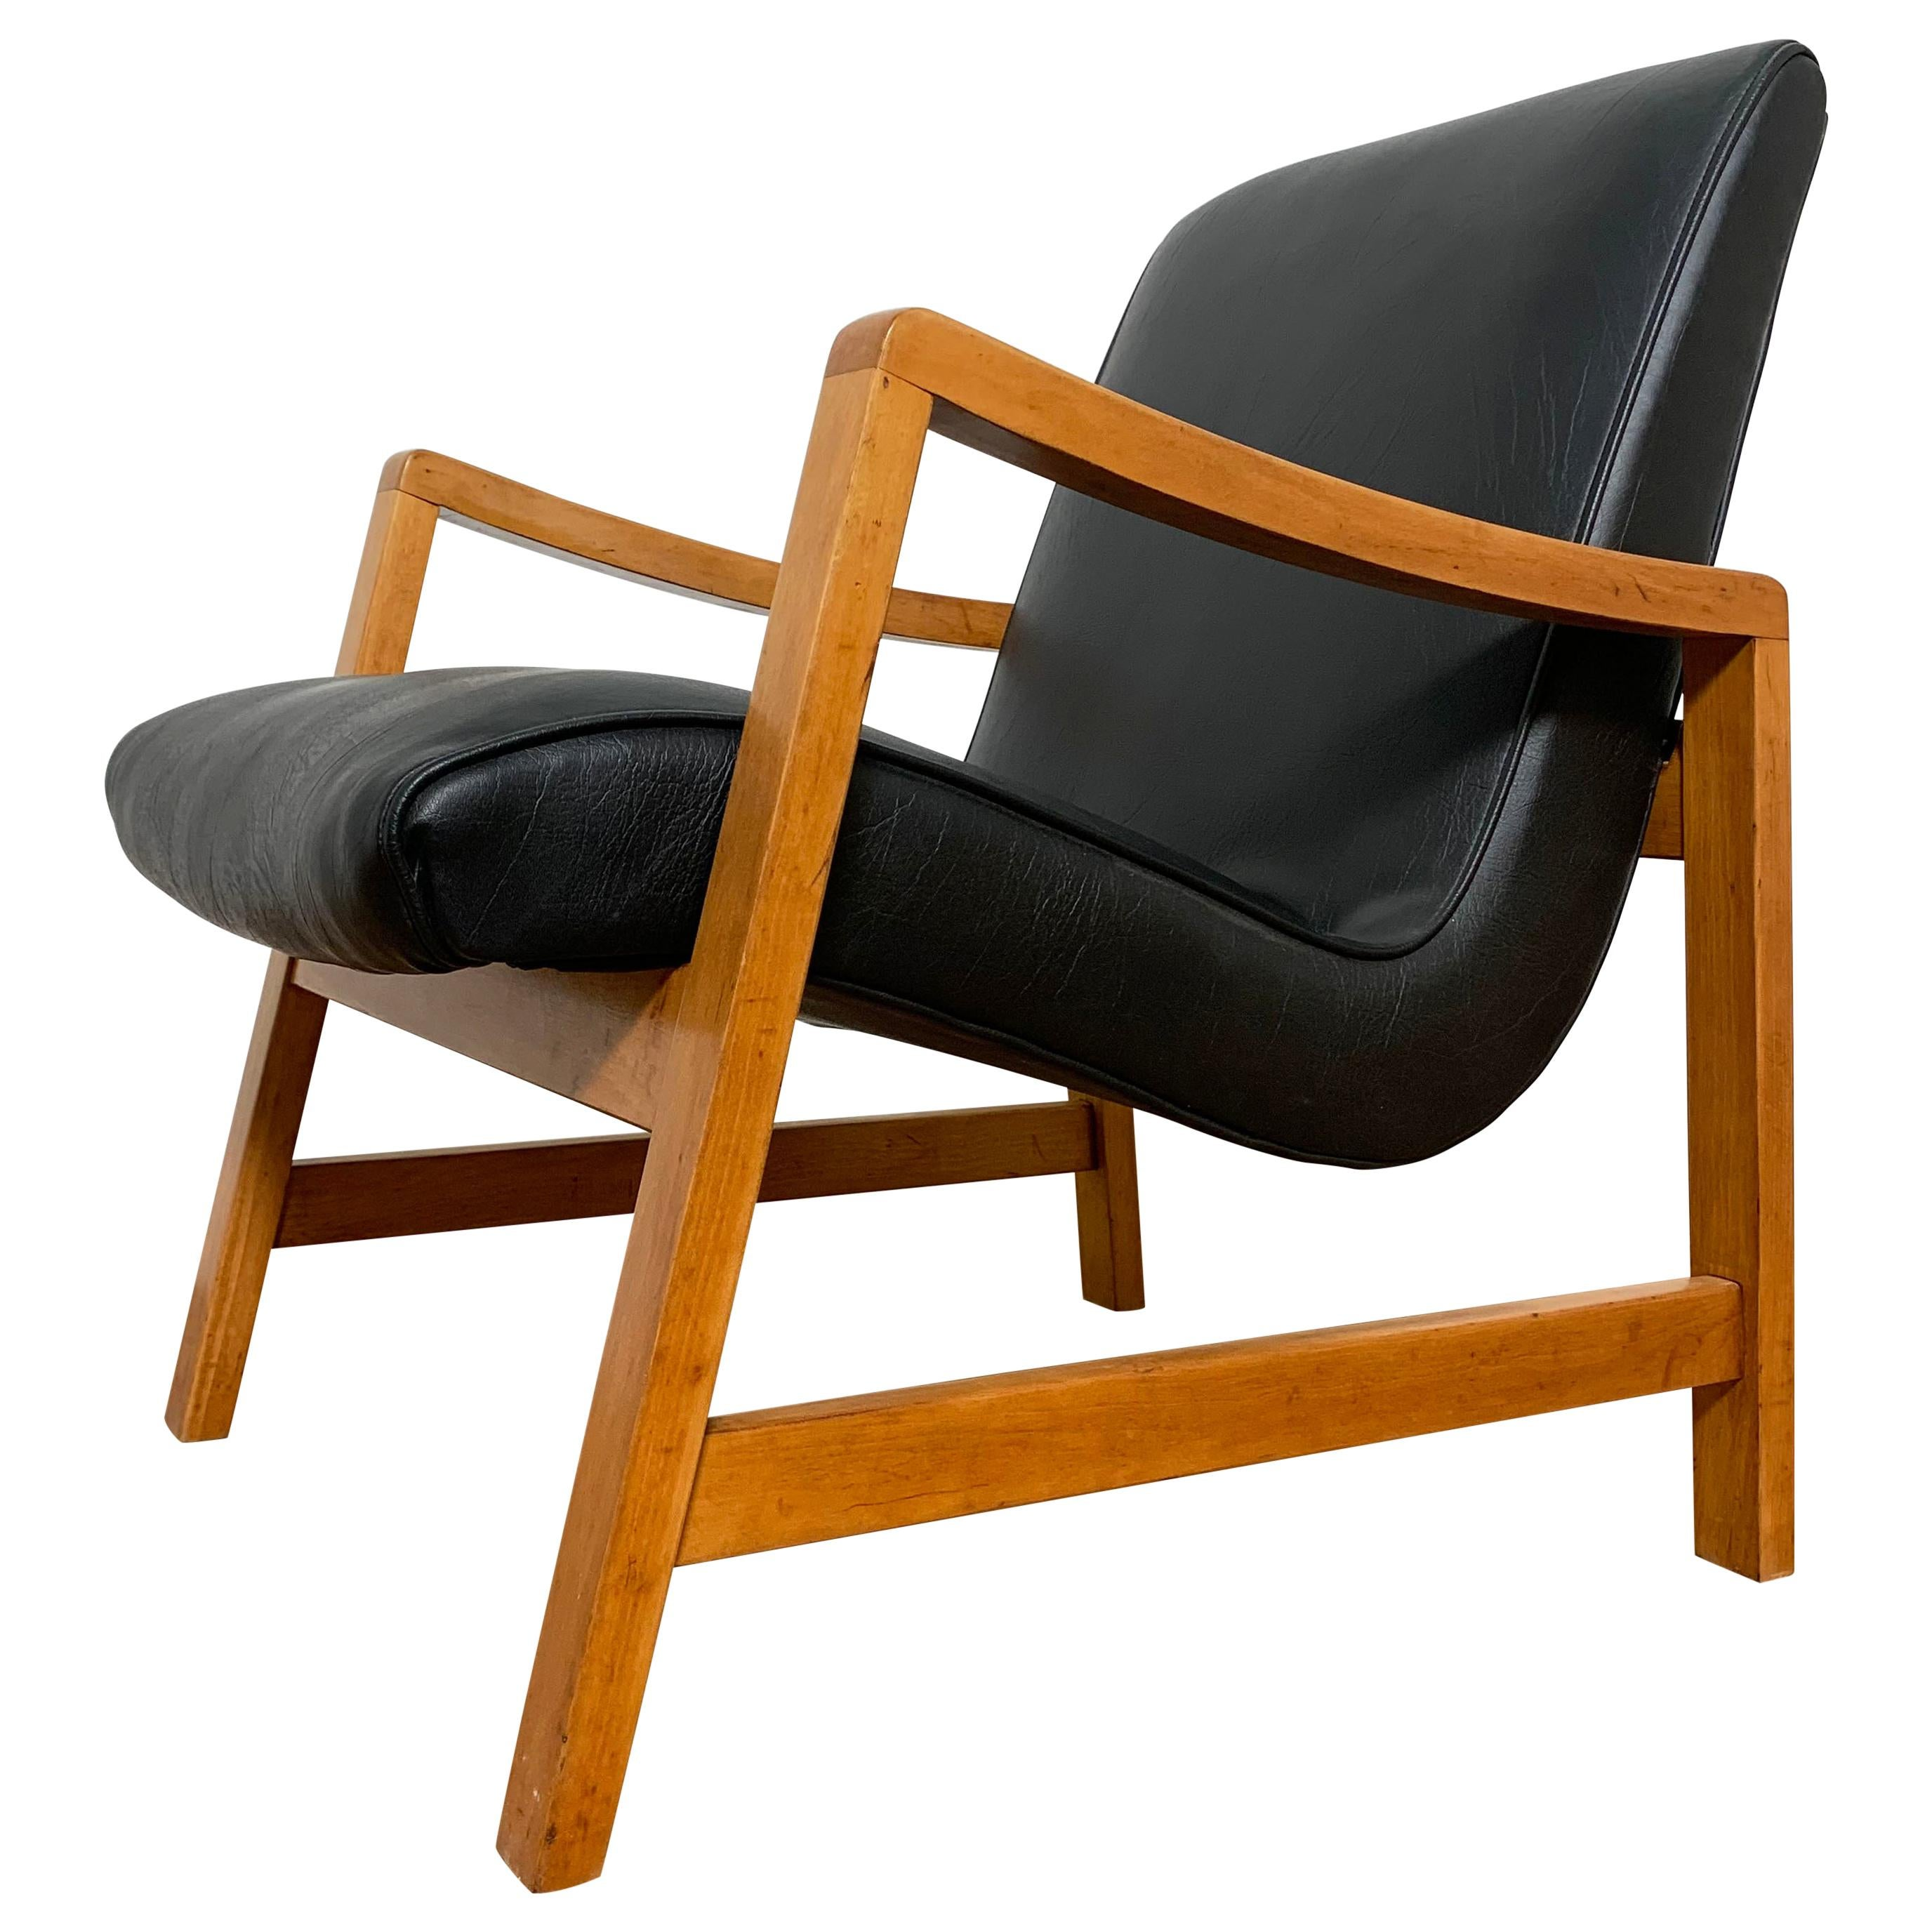 Early Jens Risom Lounge Chair for Knoll, Ca. 1950s